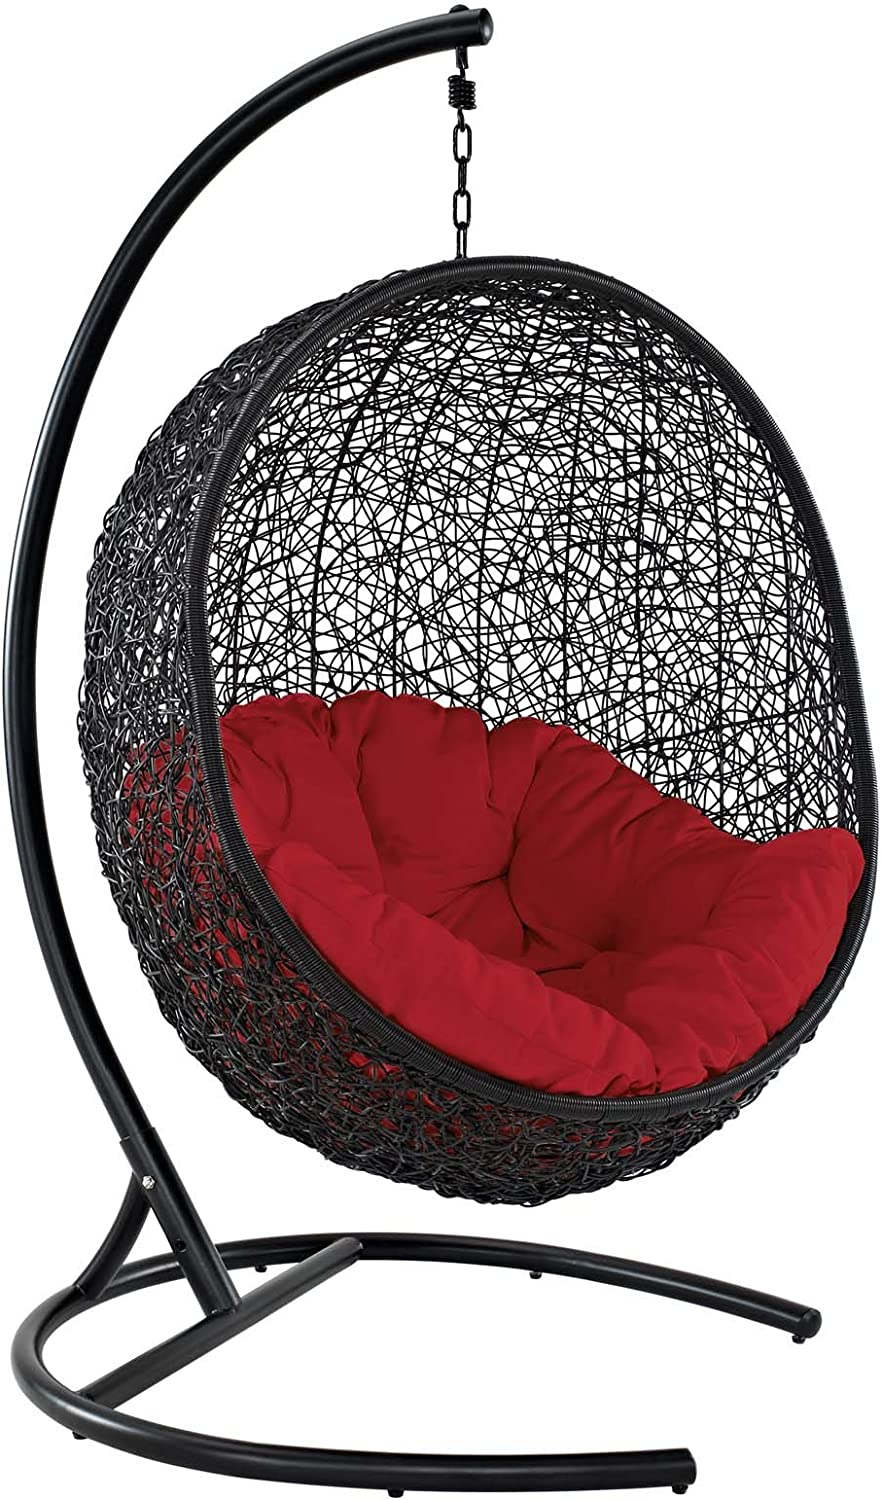 Modway EEI-739-RED-SET Encase Wicker Rattan Outdoor Patio Porch Lounge Egg, Swing Chair with Stand, Red